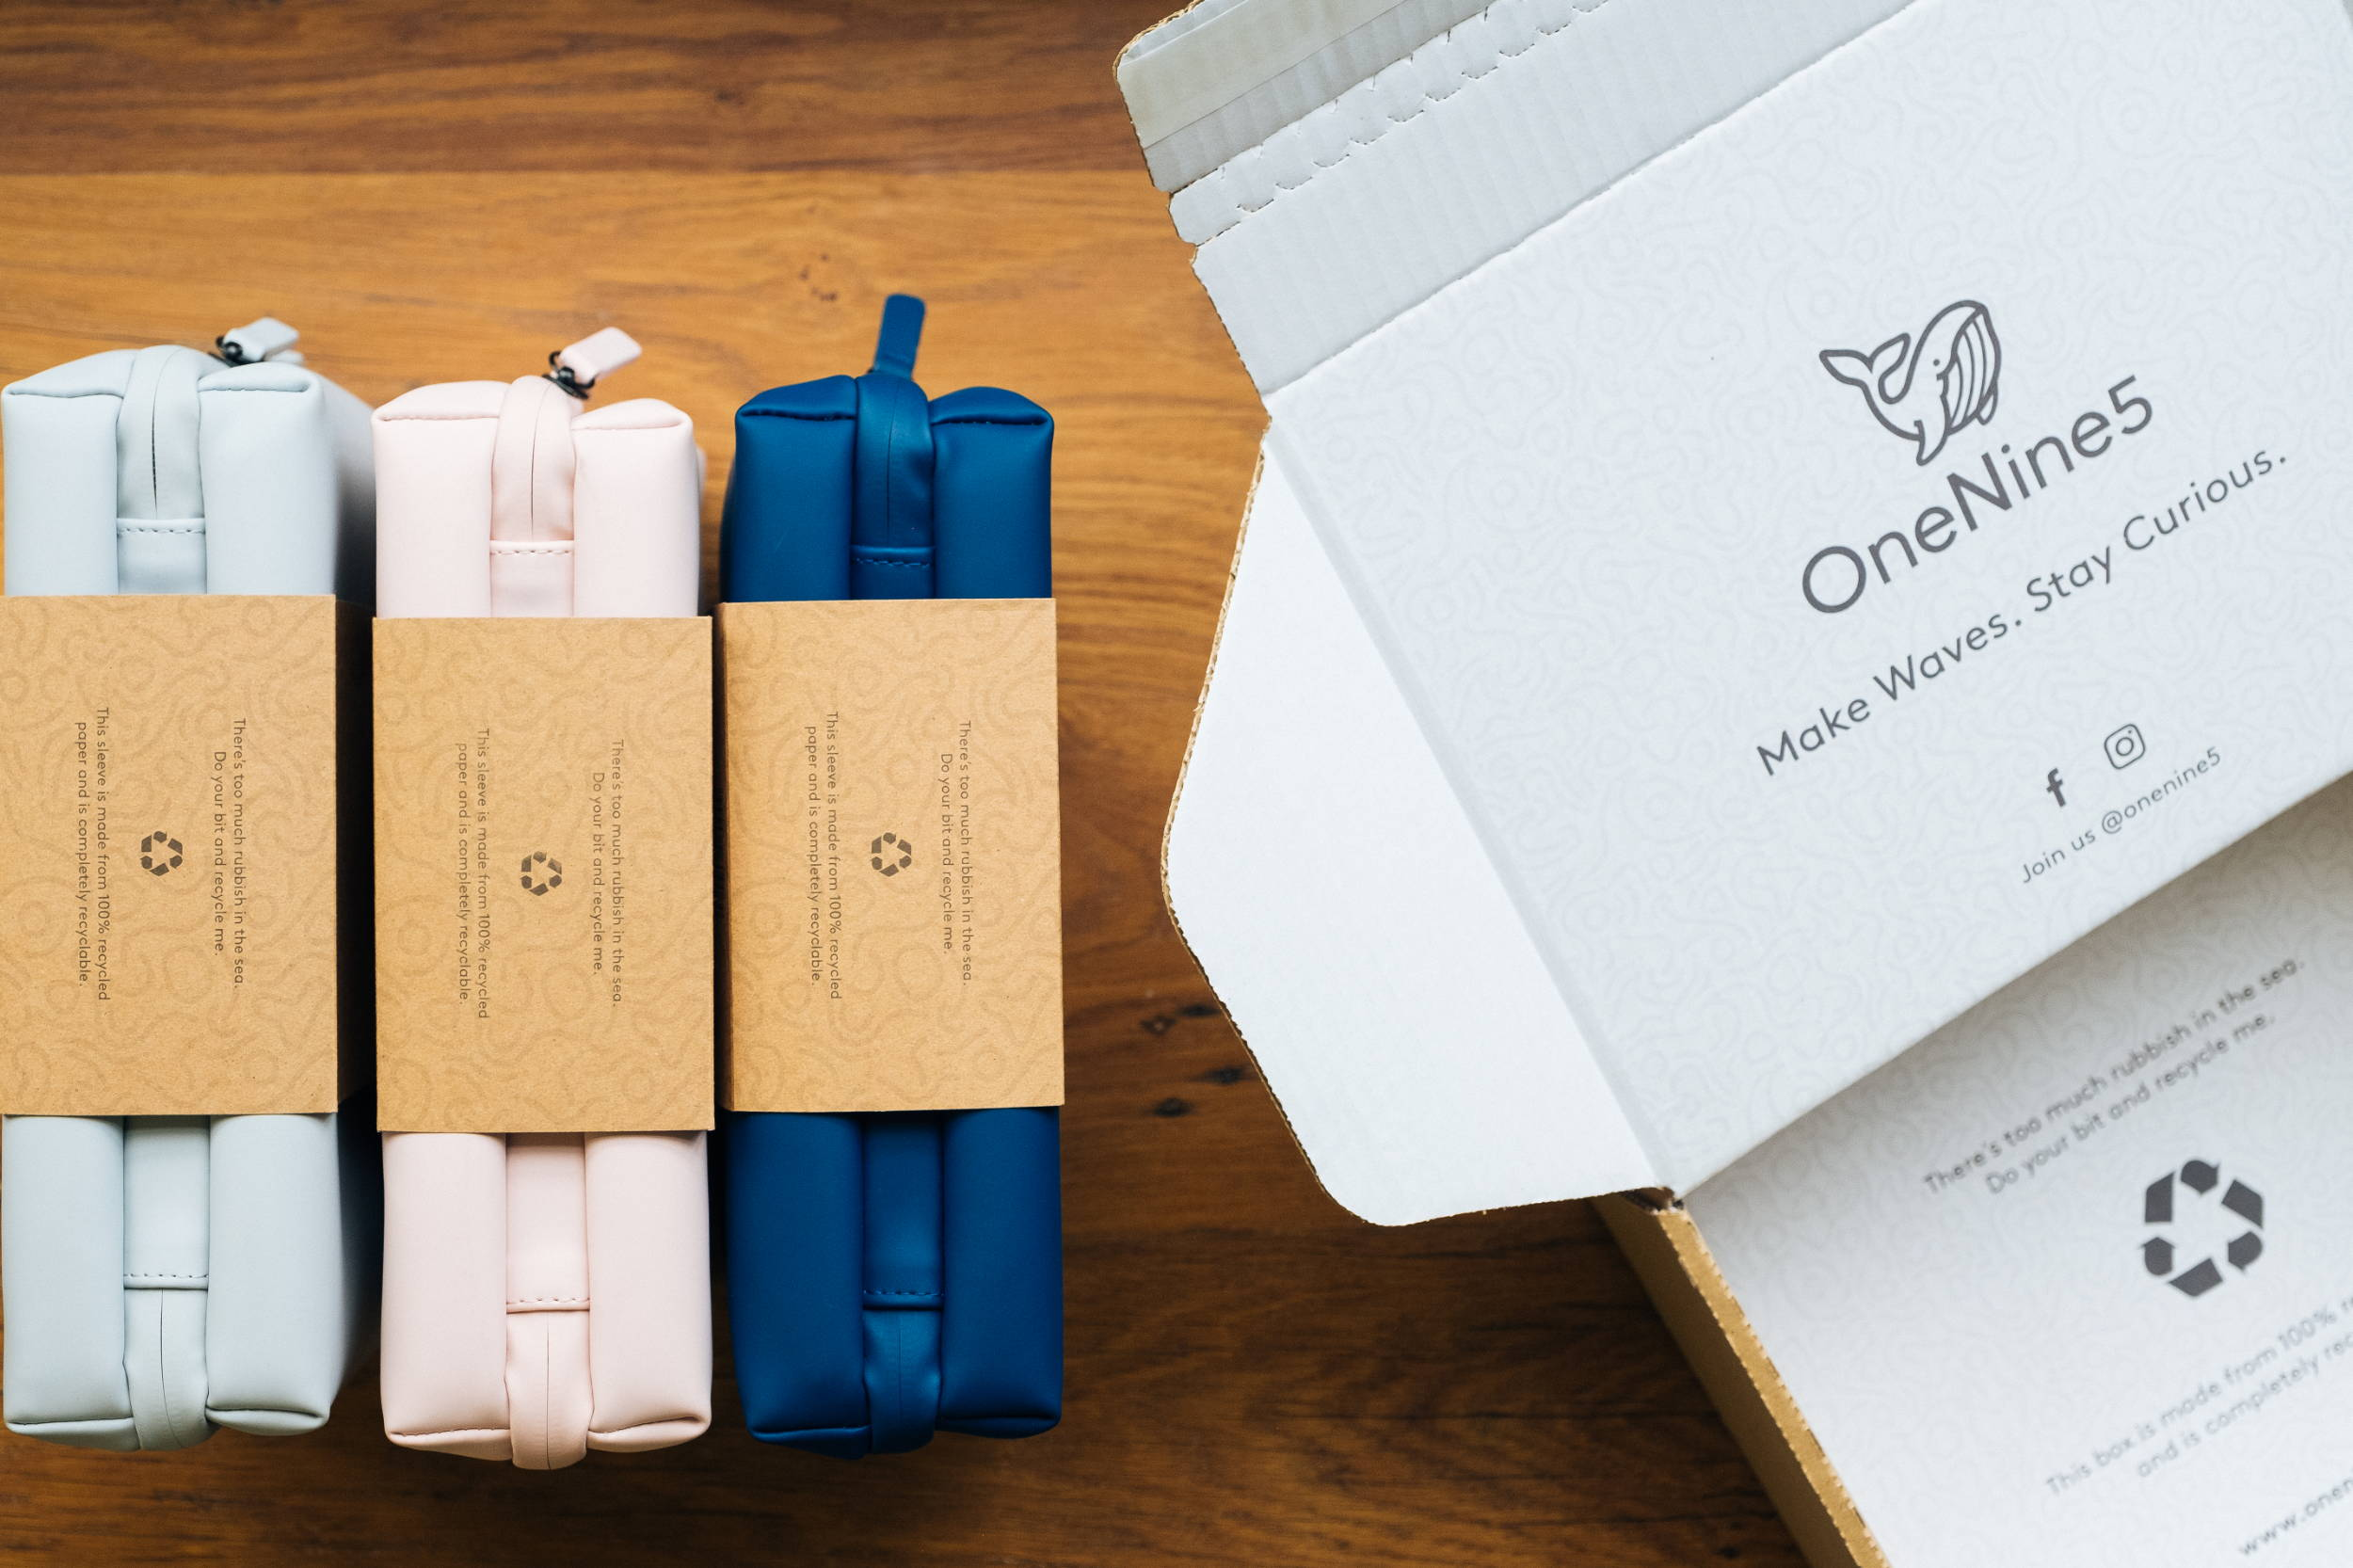 For our OneNine5 toiletry bag, we've kept the packaging simple.  All our packaging is biodegradable, recyclable or made from recycled materials